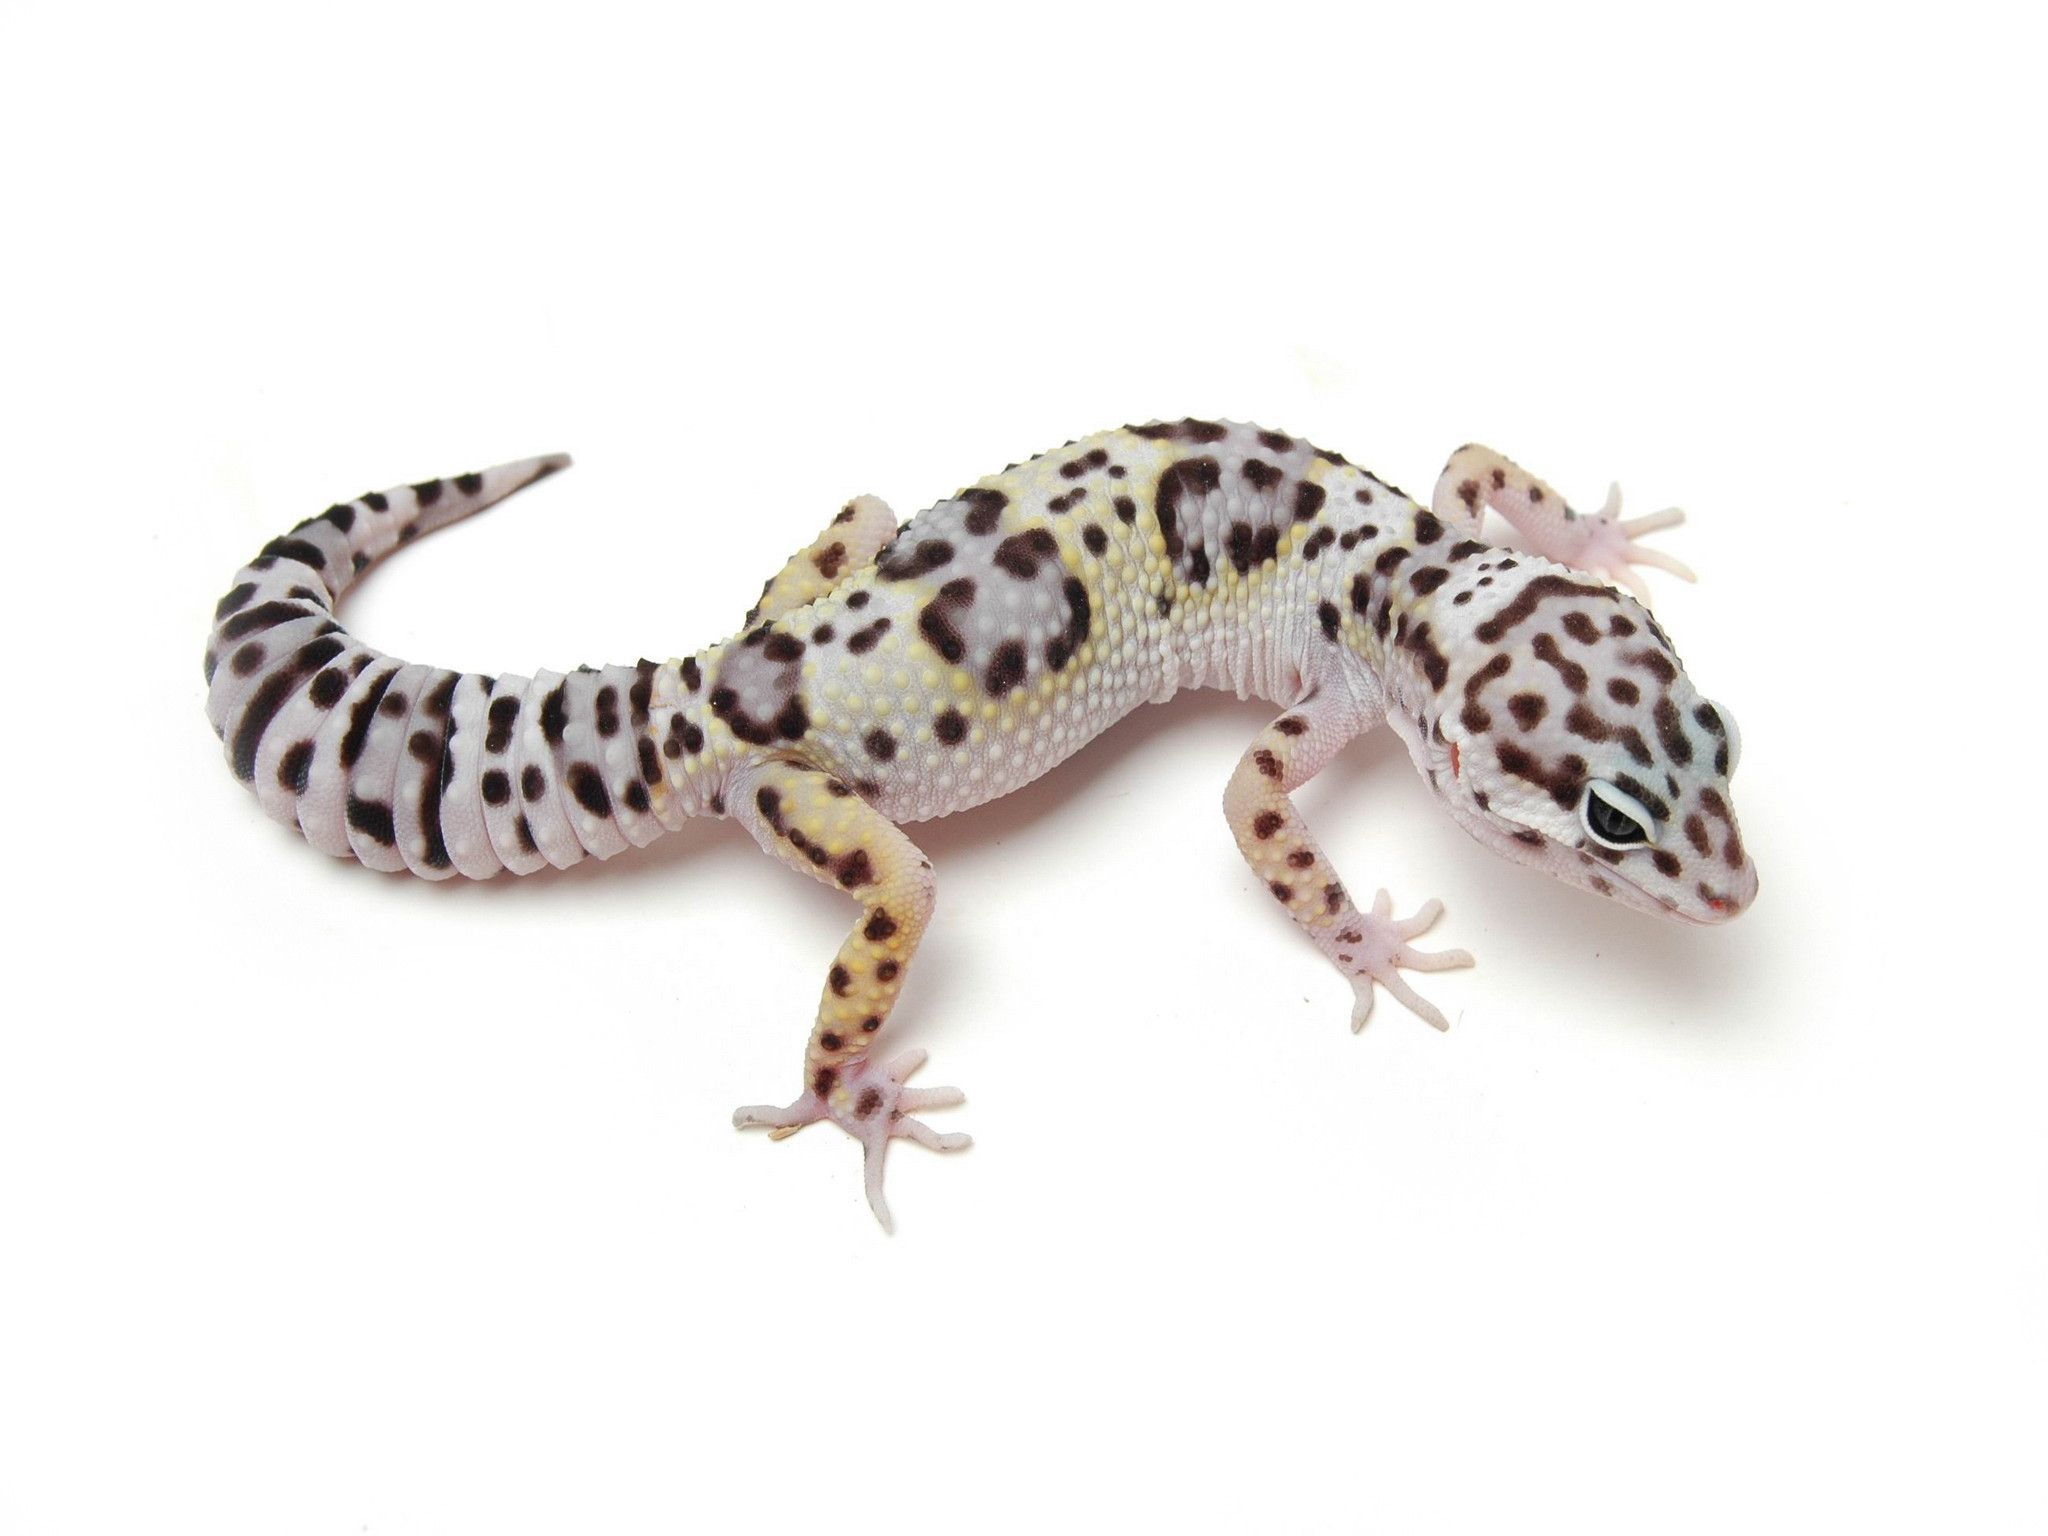 iguana, Reptile, Leaves, Leopard Geckos, Animals Wallpapers HD 950